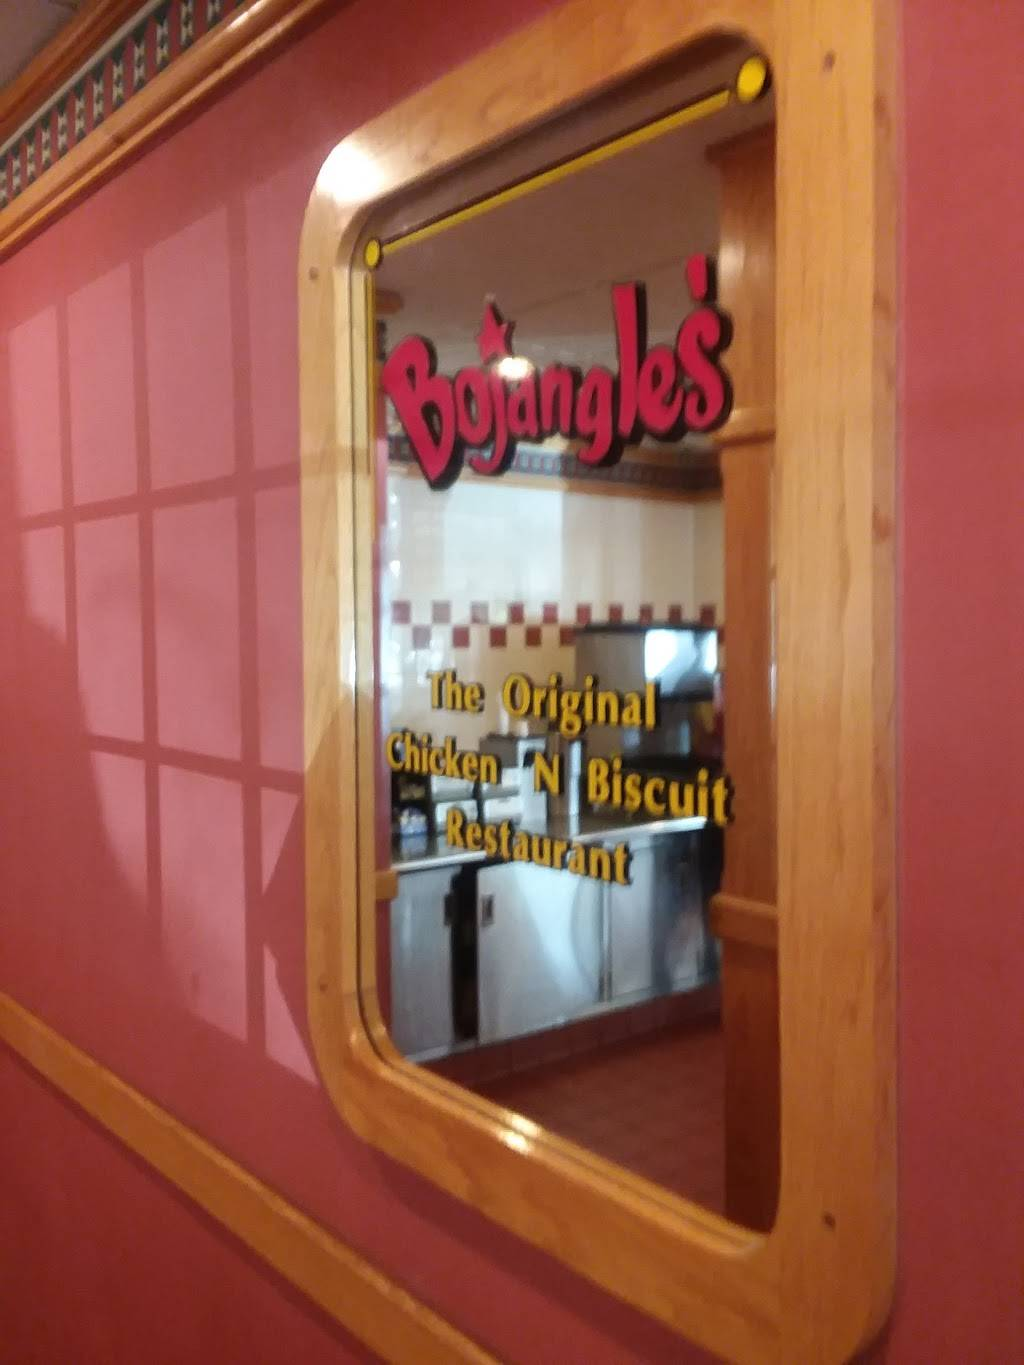 Bojangles Famous Chicken n Biscuits | restaurant | 4621 New Bern Ave, Raleigh, NC 27610, USA | 9192319028 OR +1 919-231-9028